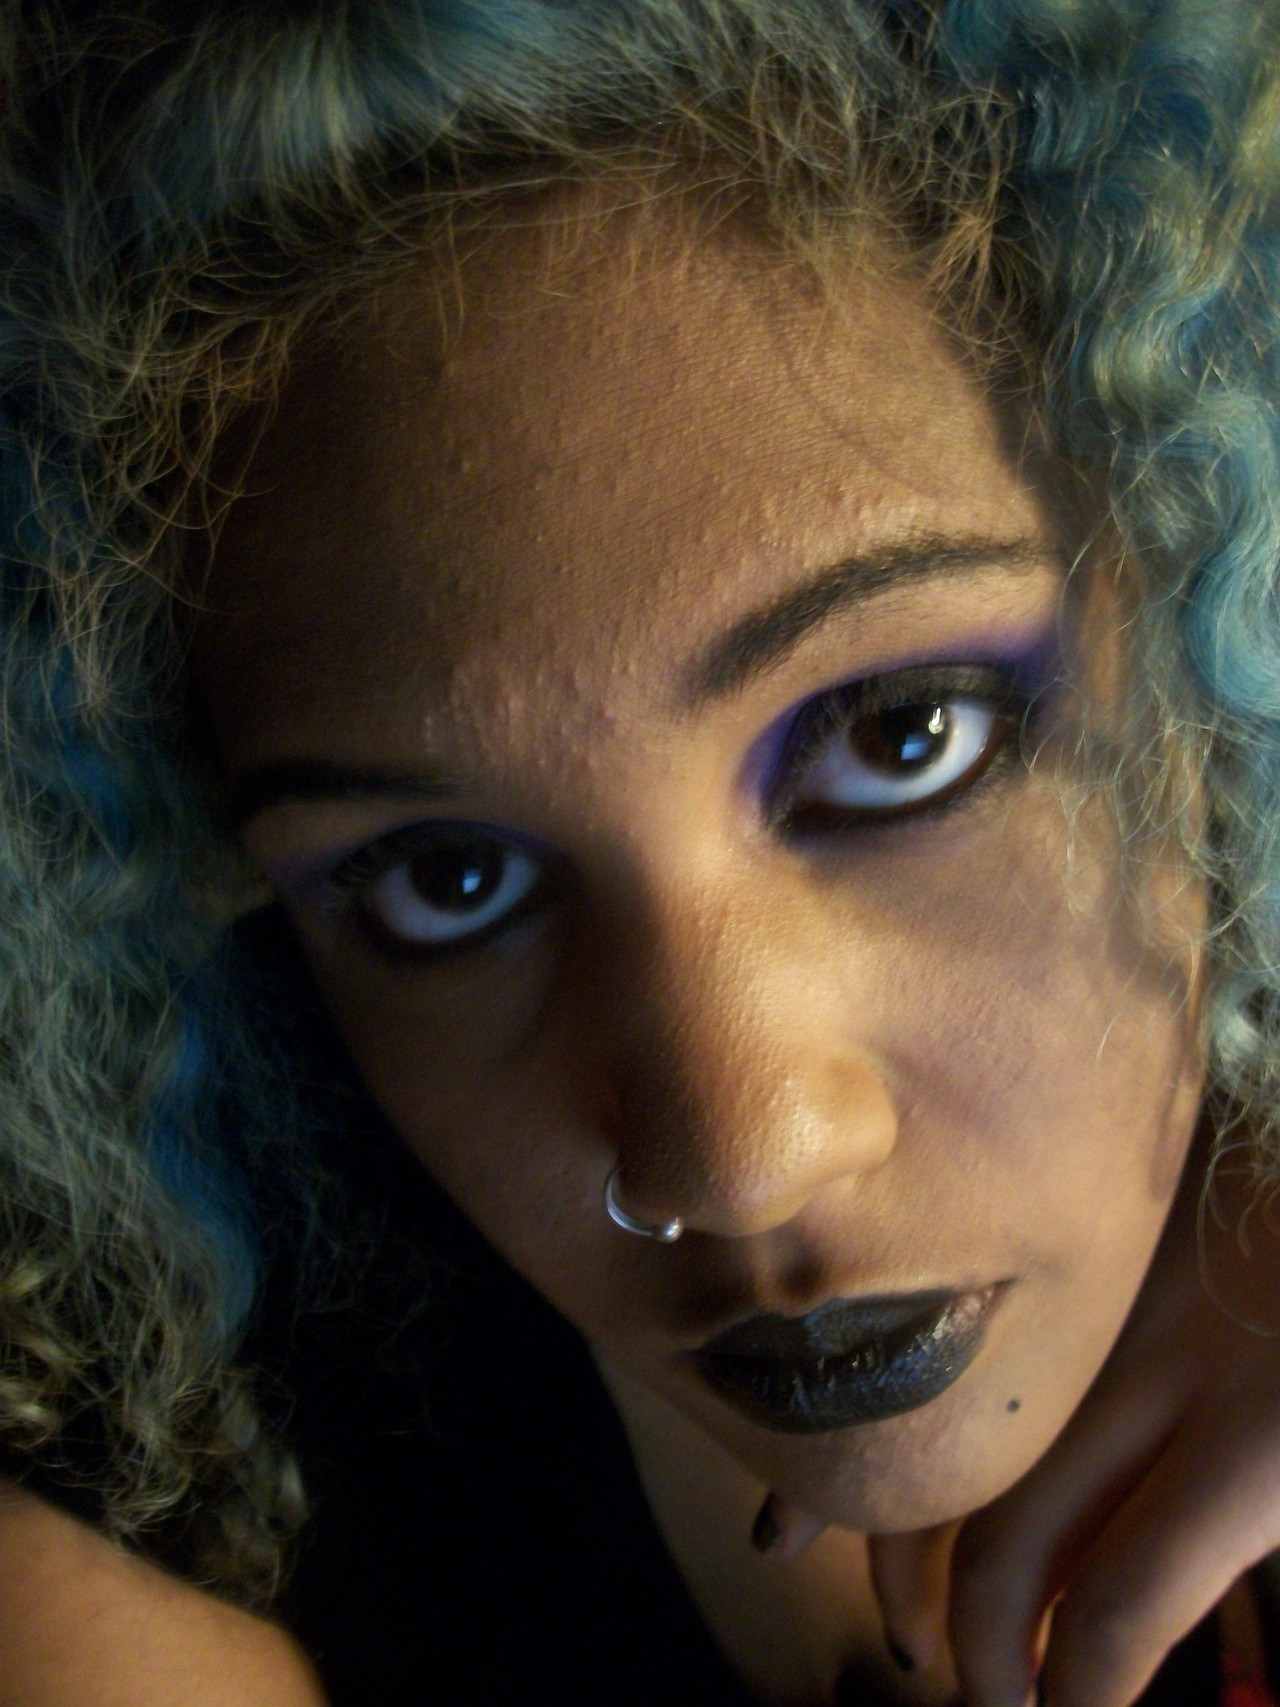 [image: mixed goth with curly blue hair, purple eye makeup, and black lipstick]